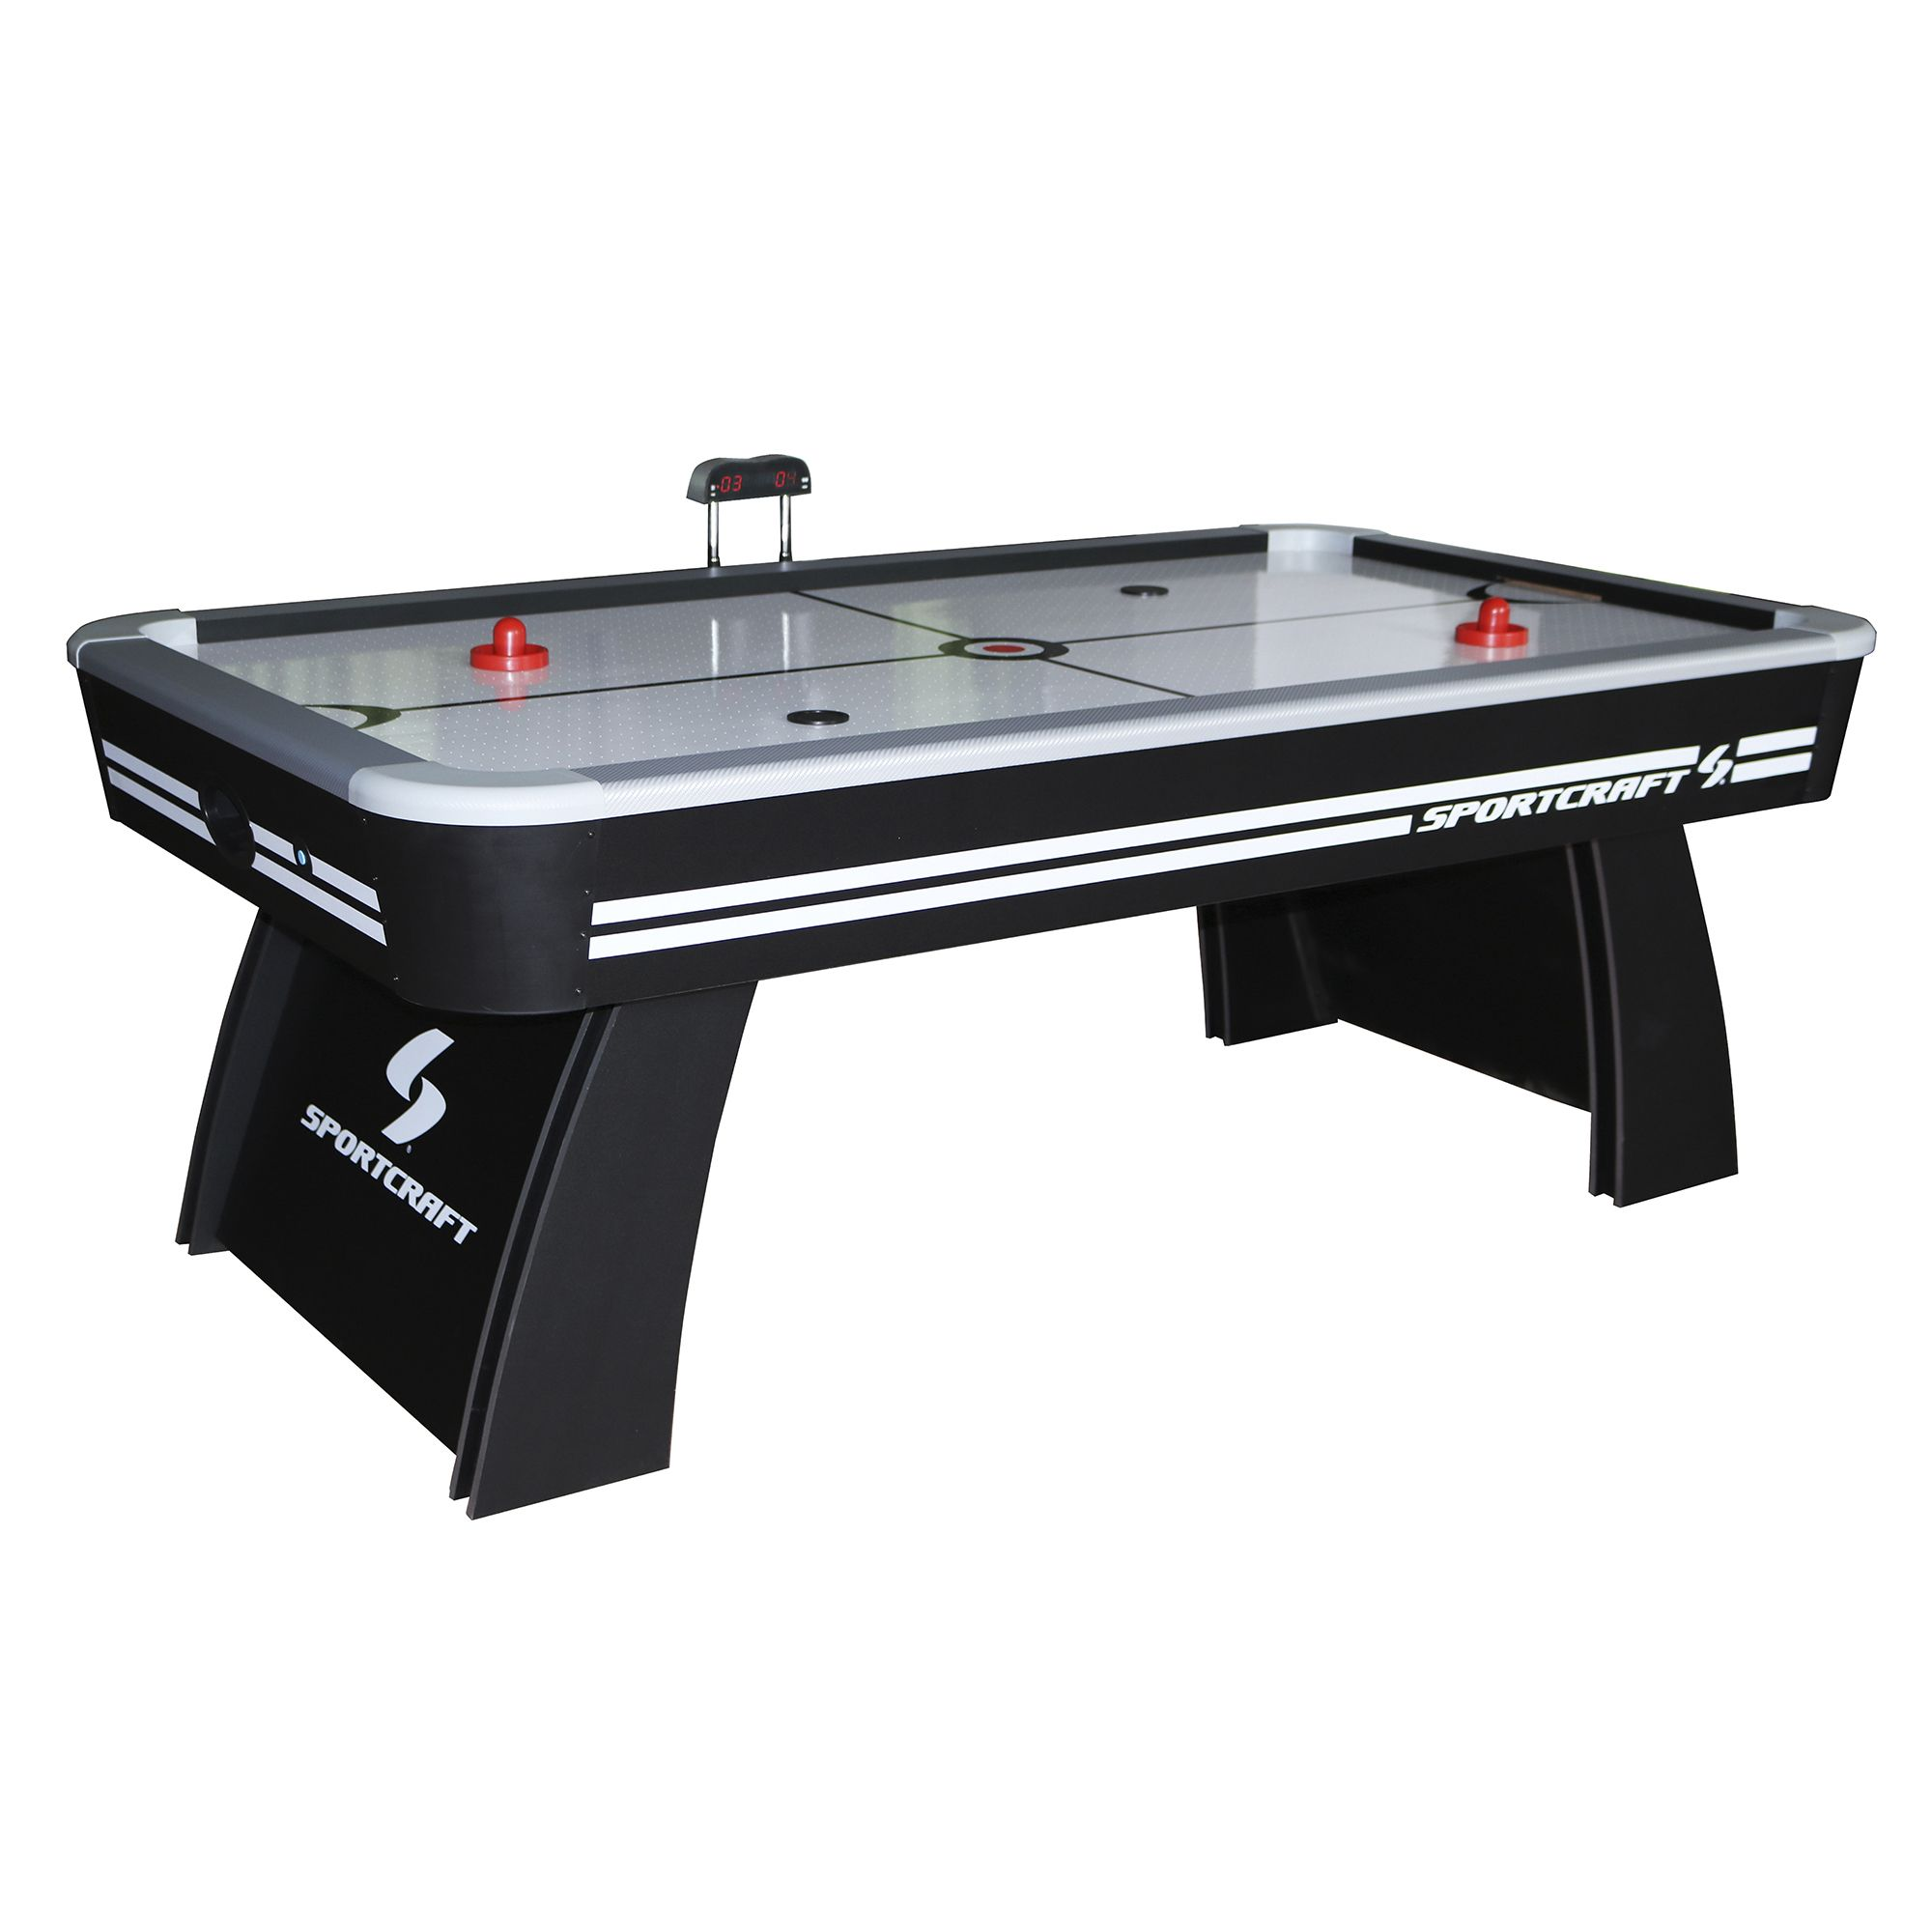 Complete Your Game Room With The Sportcraft Air Hockey Ping Pong Combo Table The Sportcraft 7 Air Hockey And Table Te Air Hockey Table Air Hockey Table Tennis